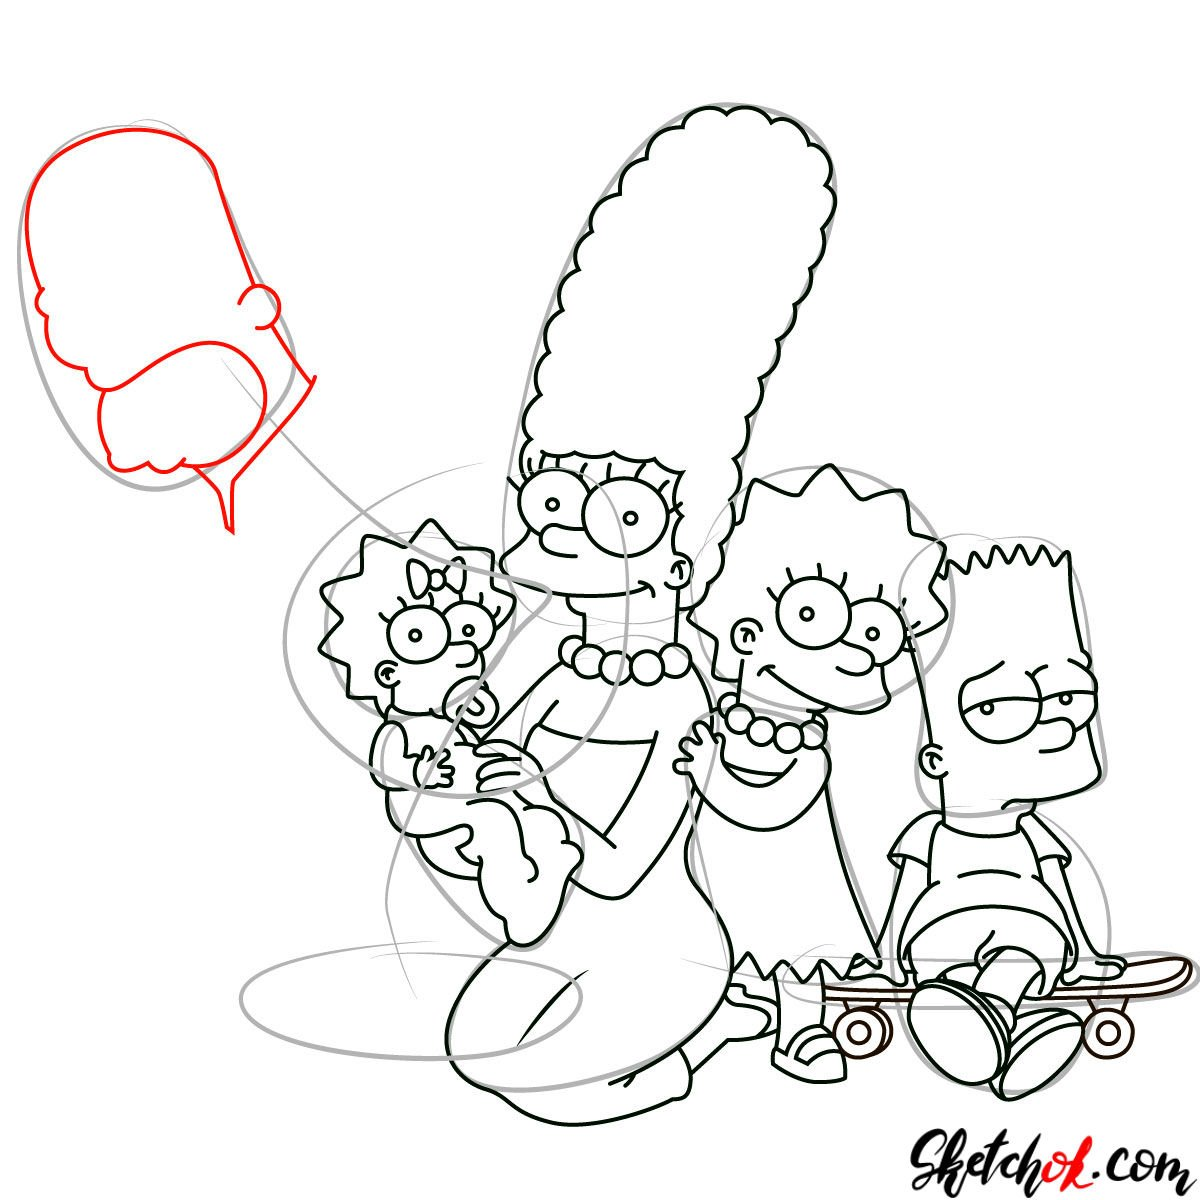 How to draw the Simpsons Family - step 24